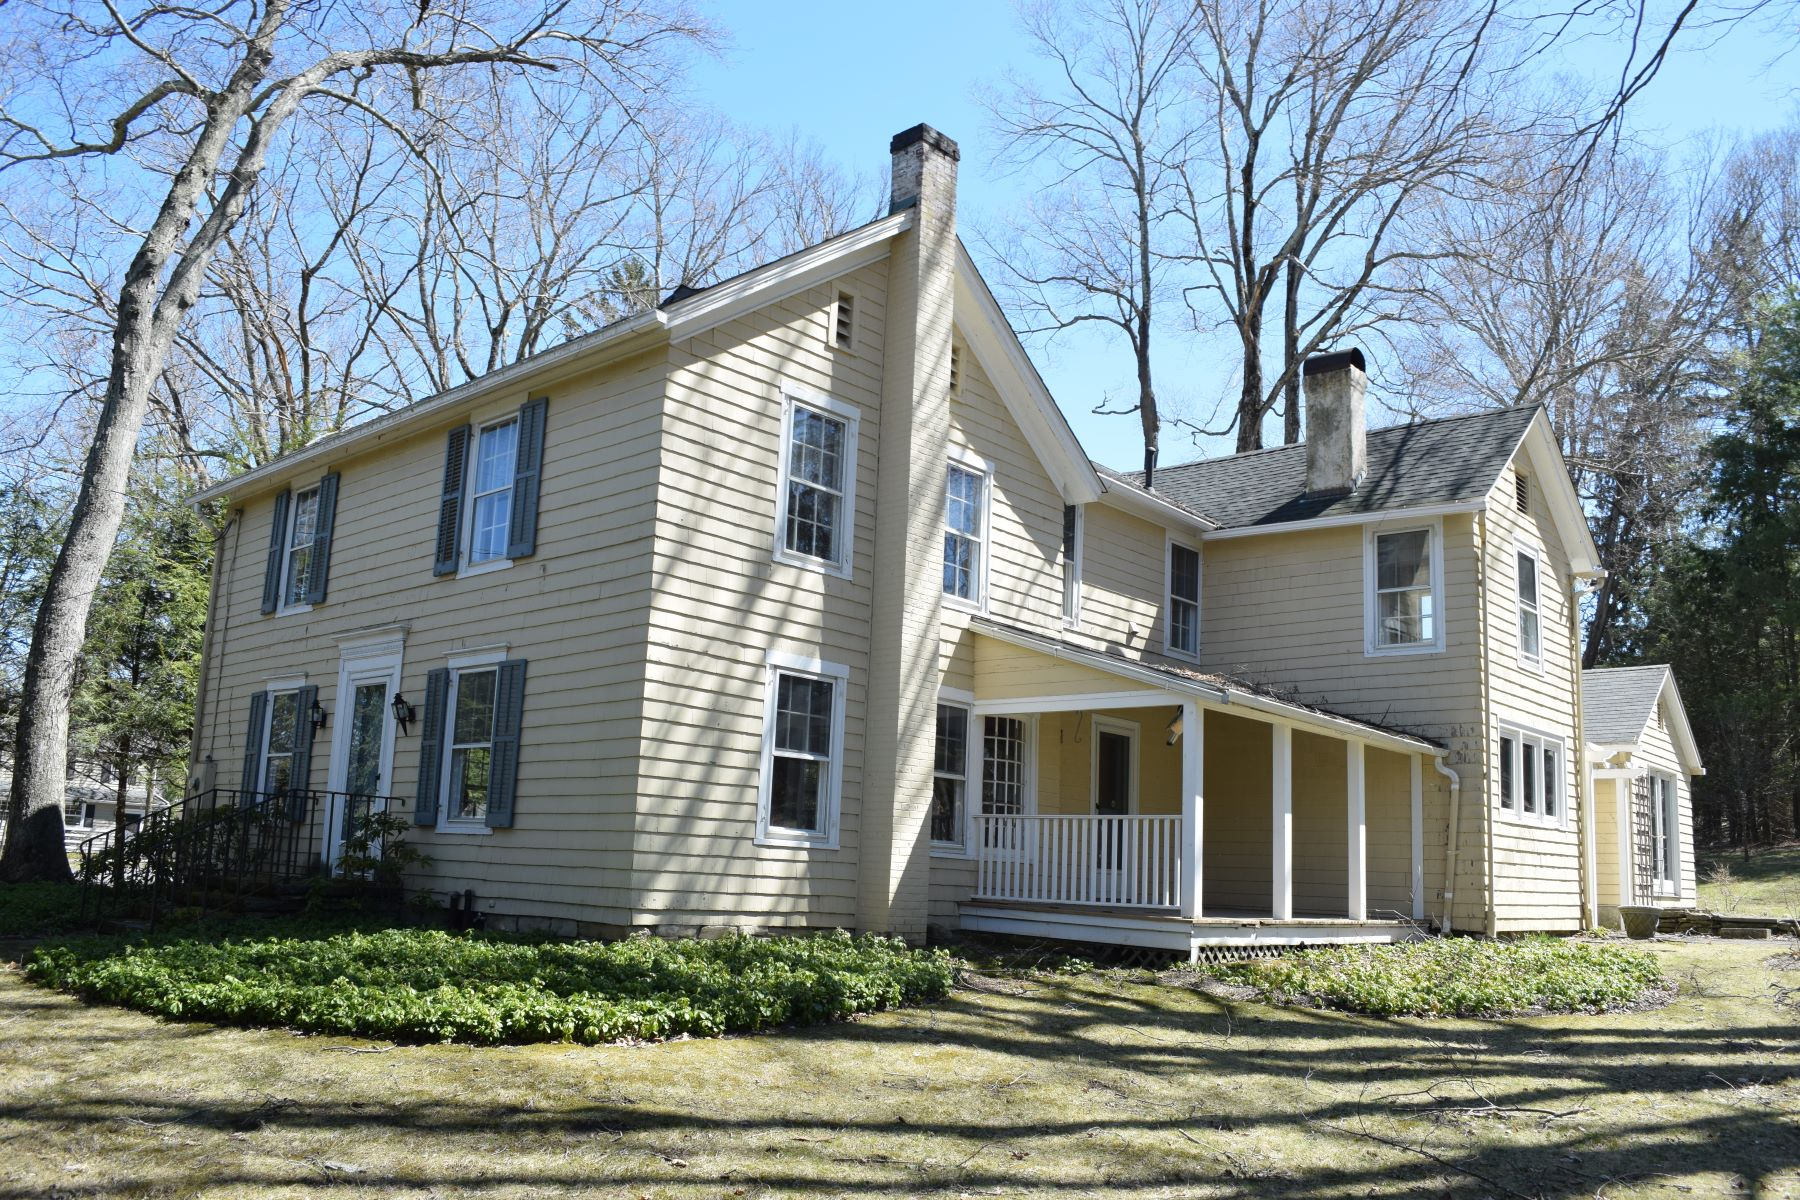 Casa Unifamiliar por un Venta en Historic District Antique 87 Hilltop Rd Sharon, Connecticut, 06069 Estados Unidos